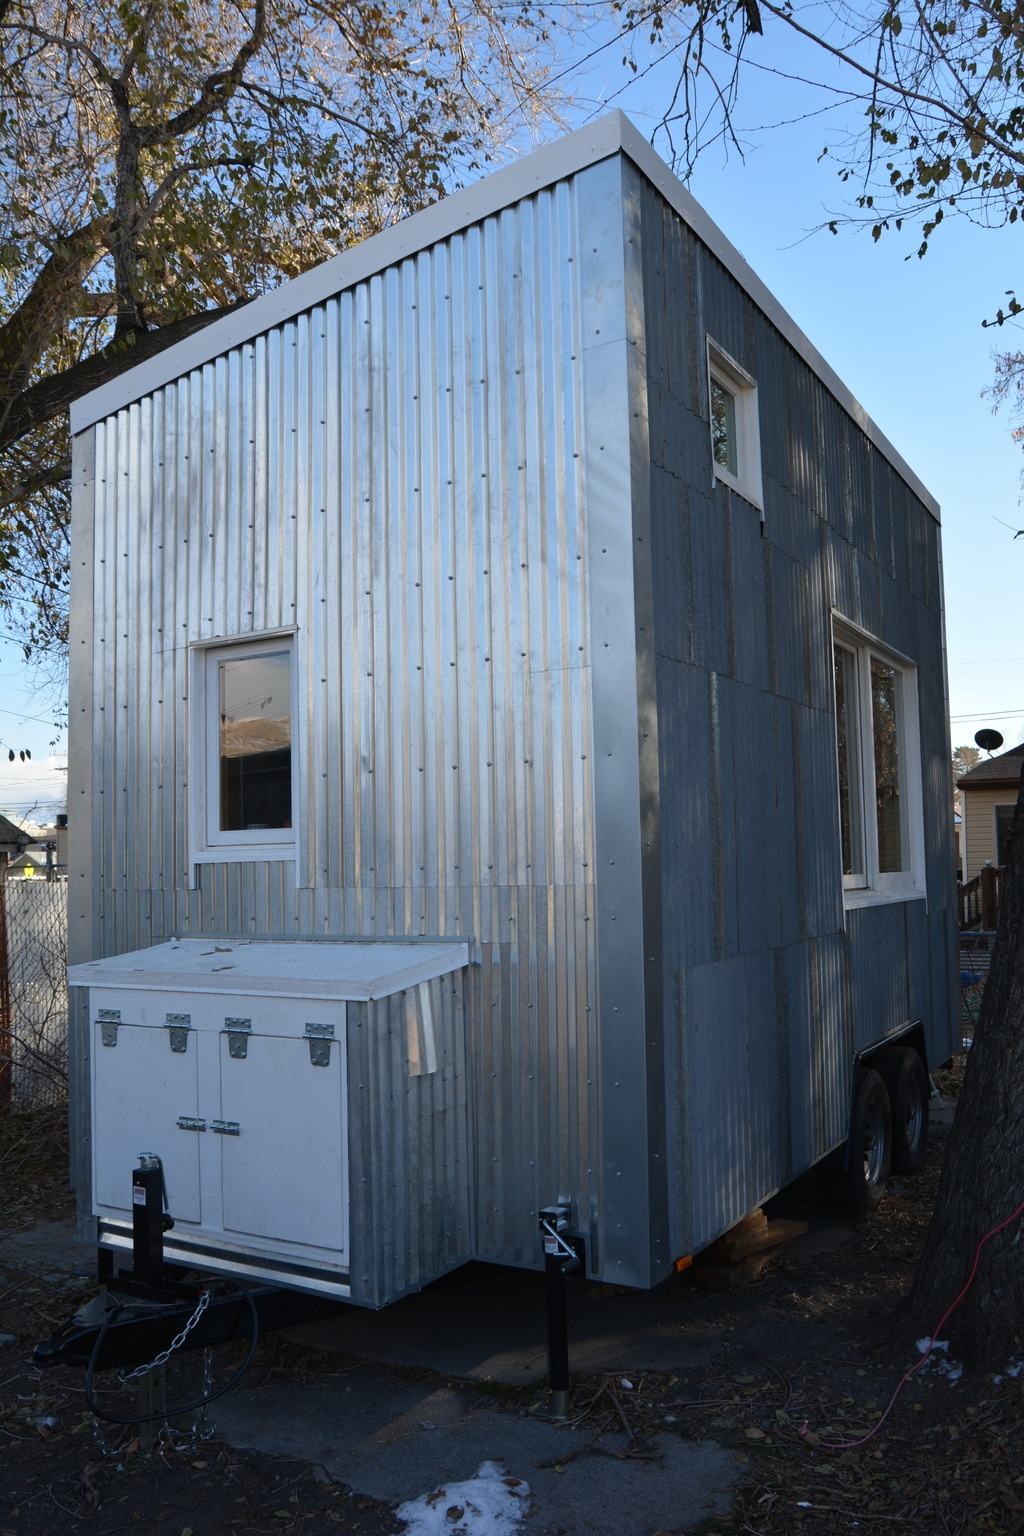 Tiny house town artist built tiny house 175 sq ft for Tiny house search